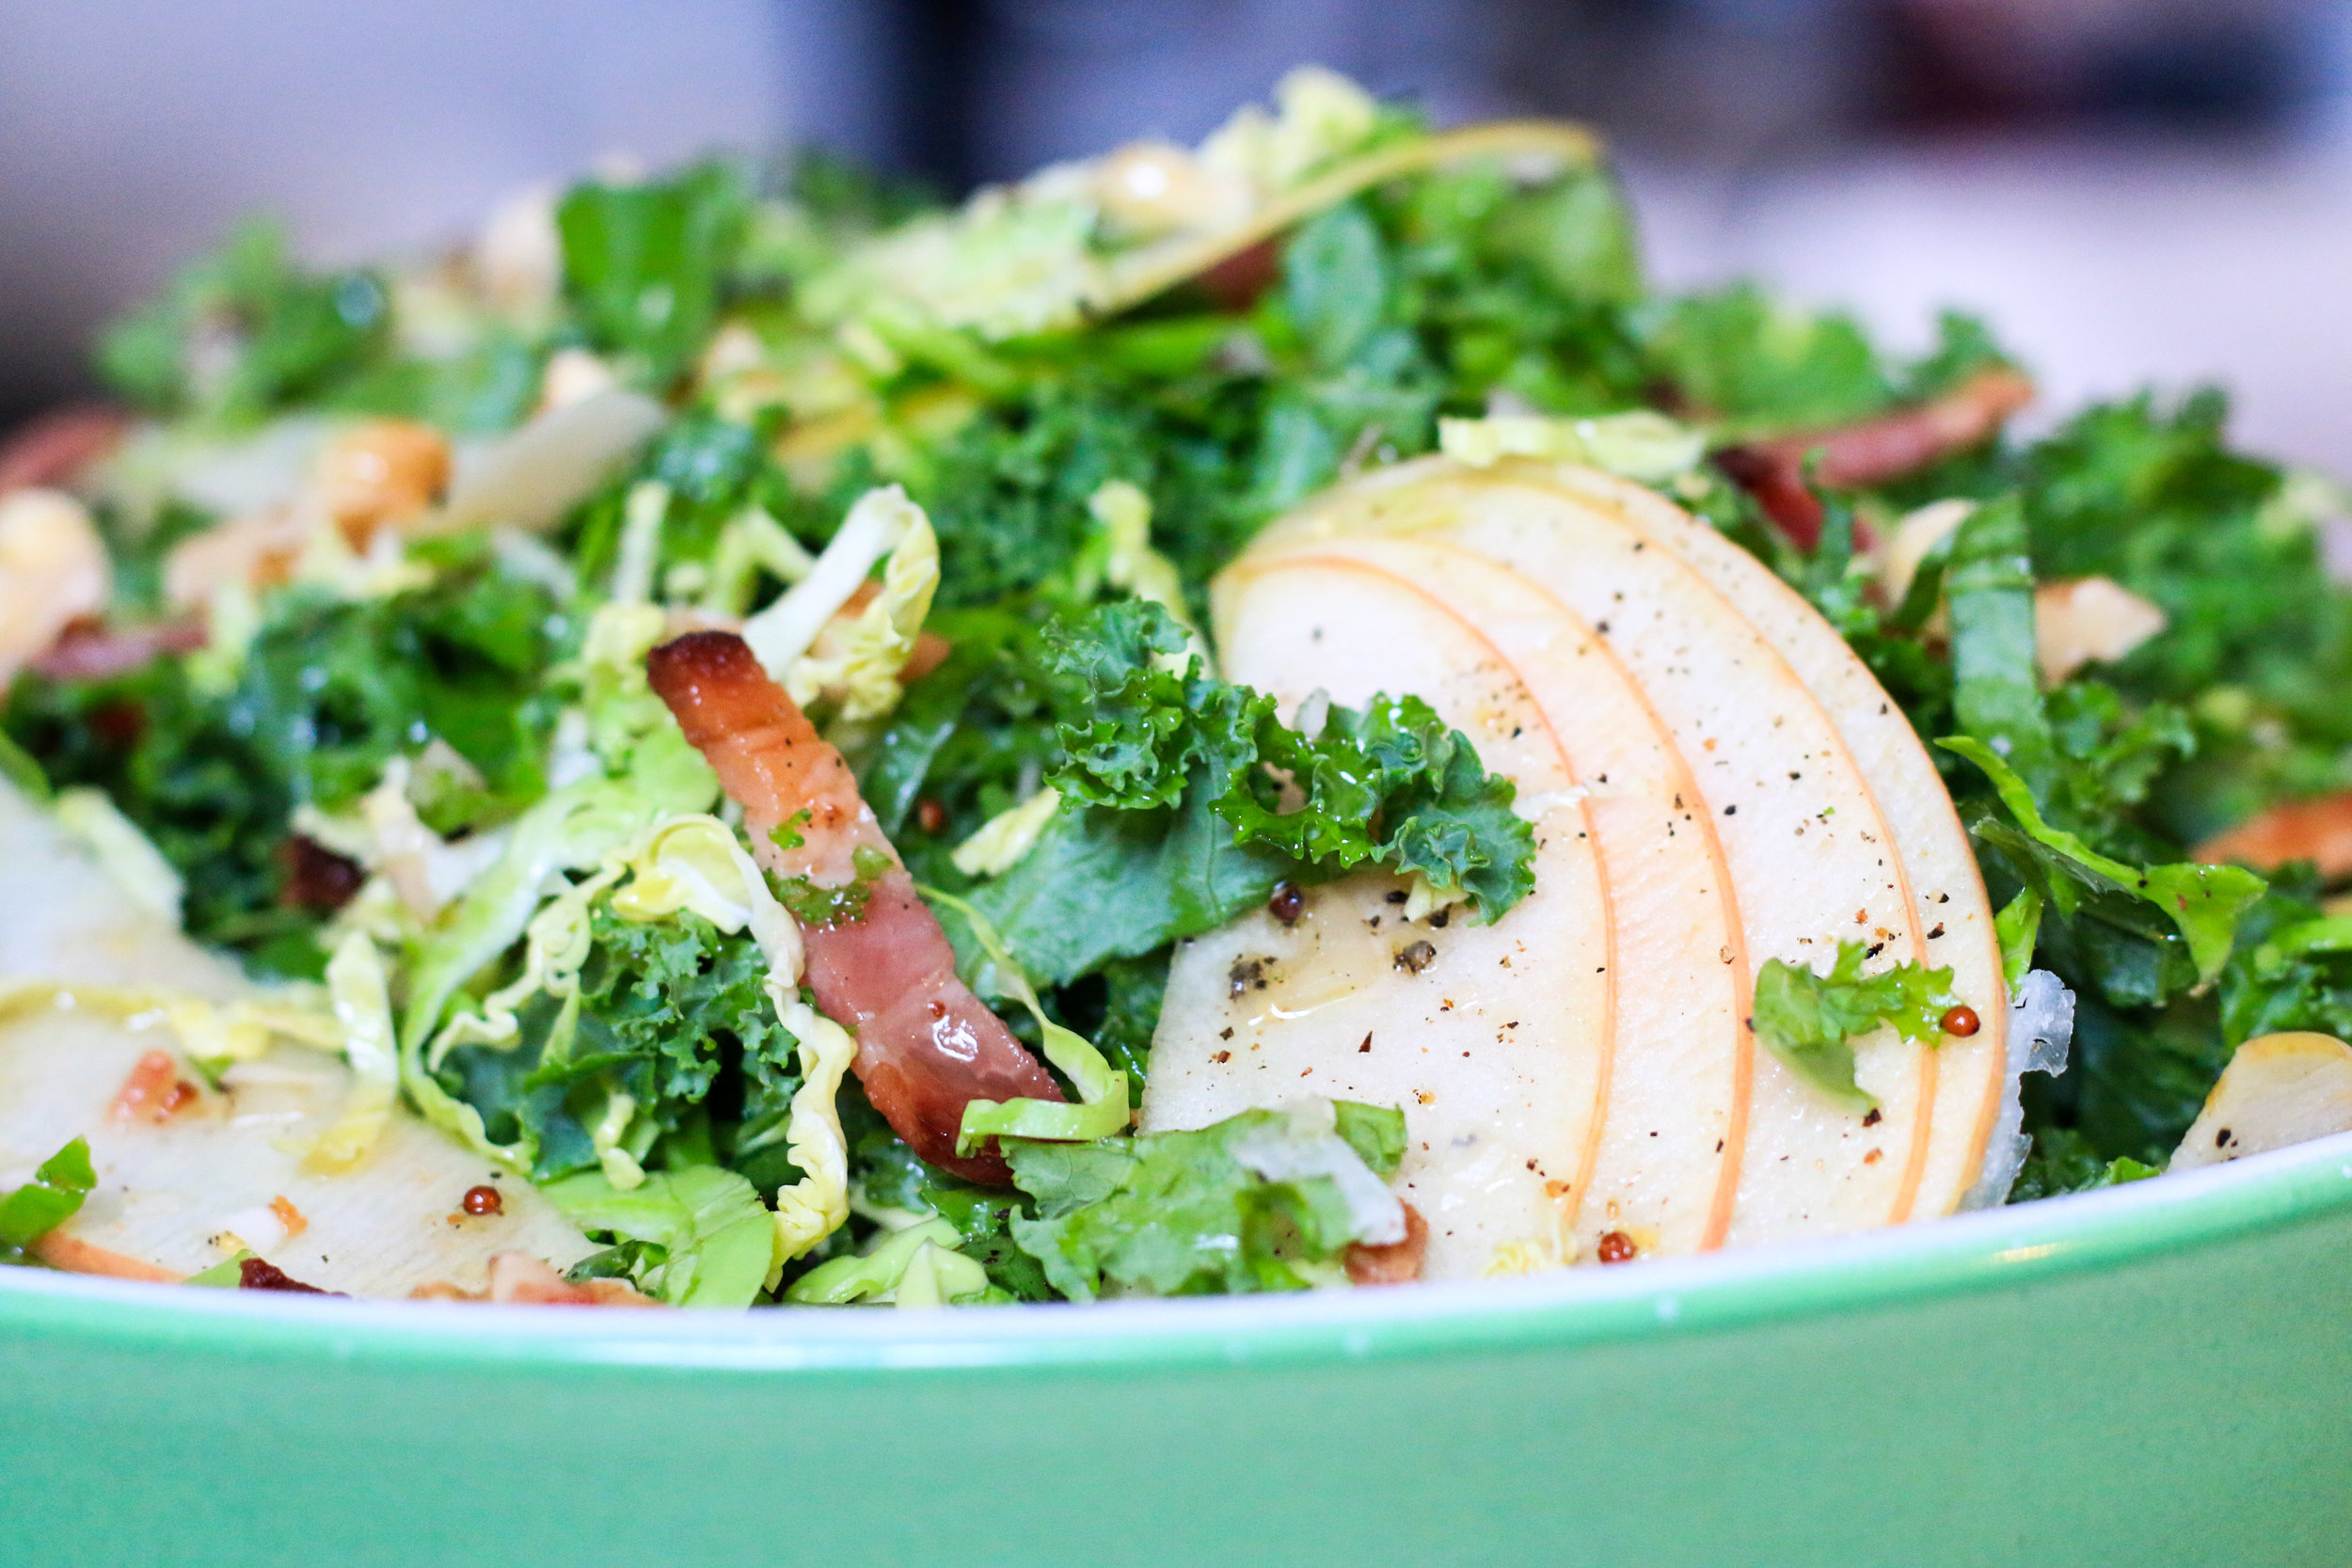 Brussels+Sprout+and+Kale+Salad-1.jpg